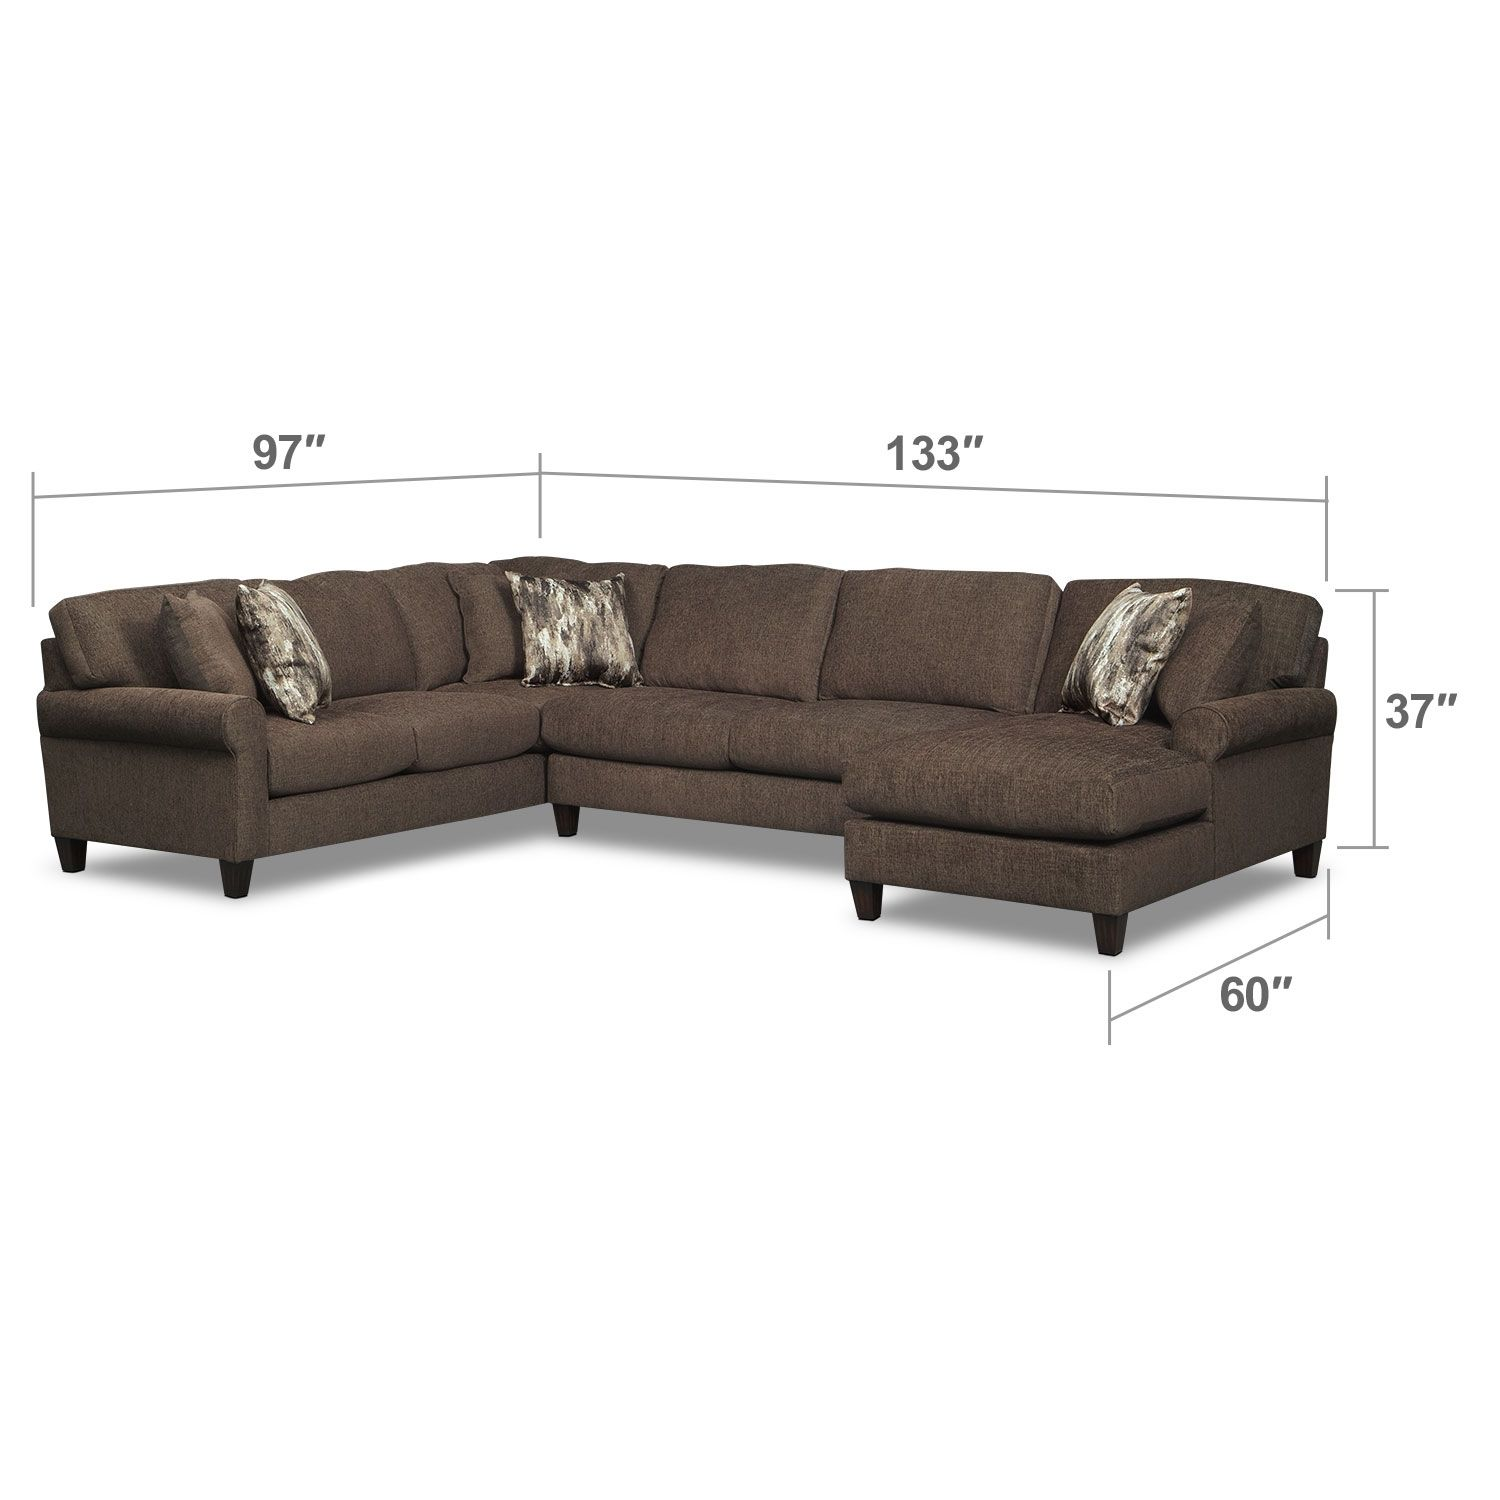 Karma Smoke 3 Pc Sectional With Right Facing Chaise Value City Furniture Living Room Furniture Collections Furniture Living Room Collections